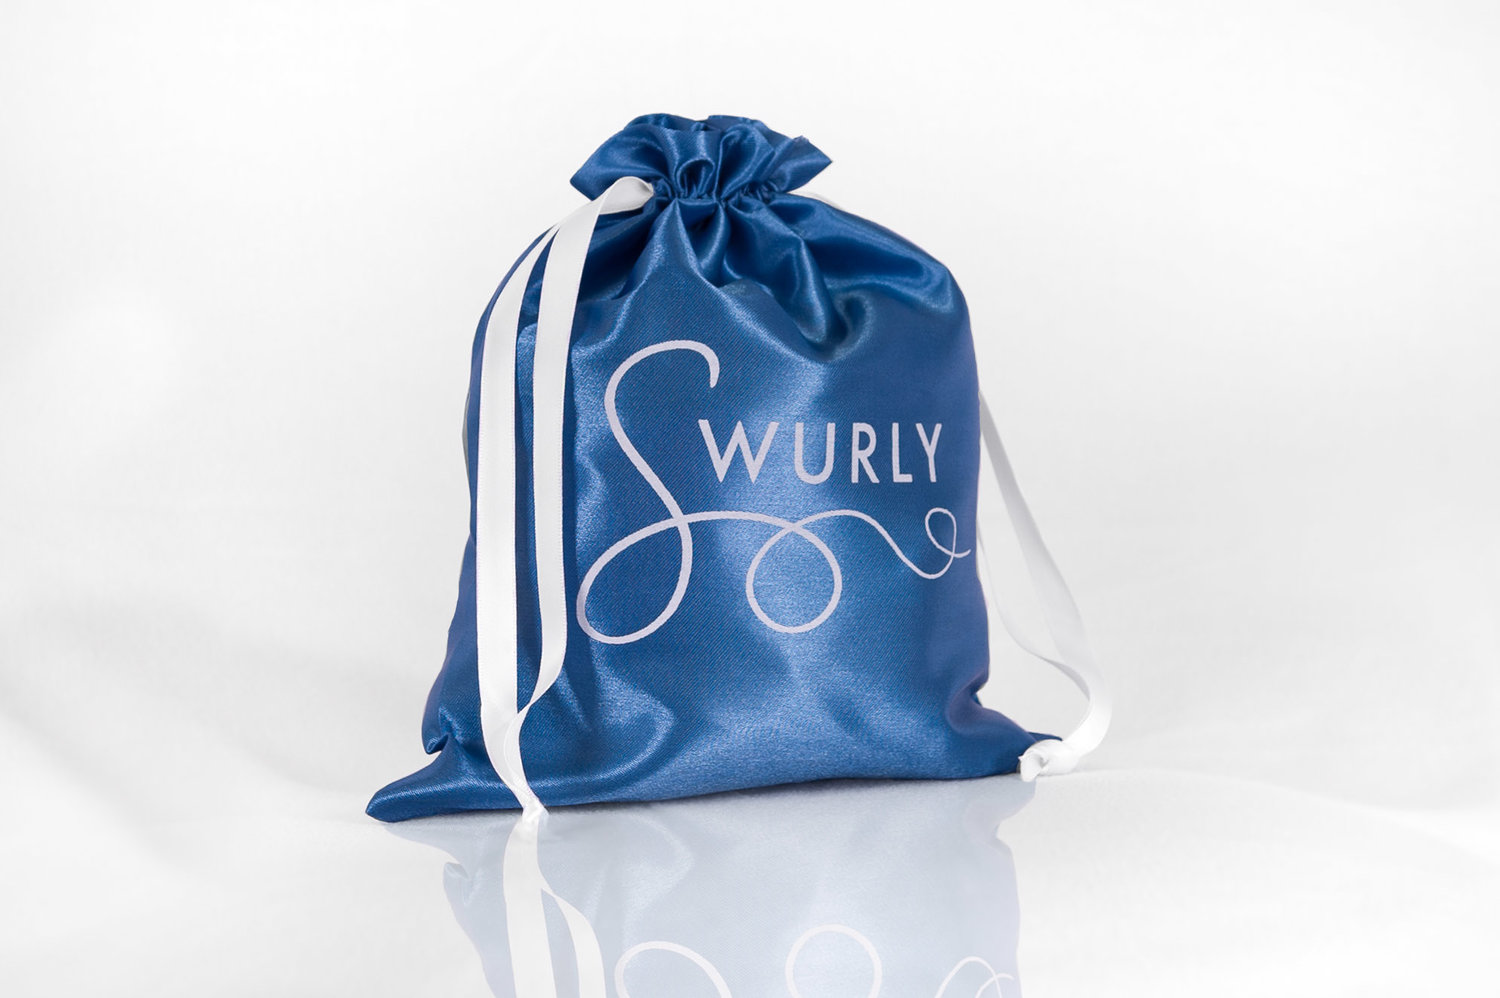 Swag Bags Swurly